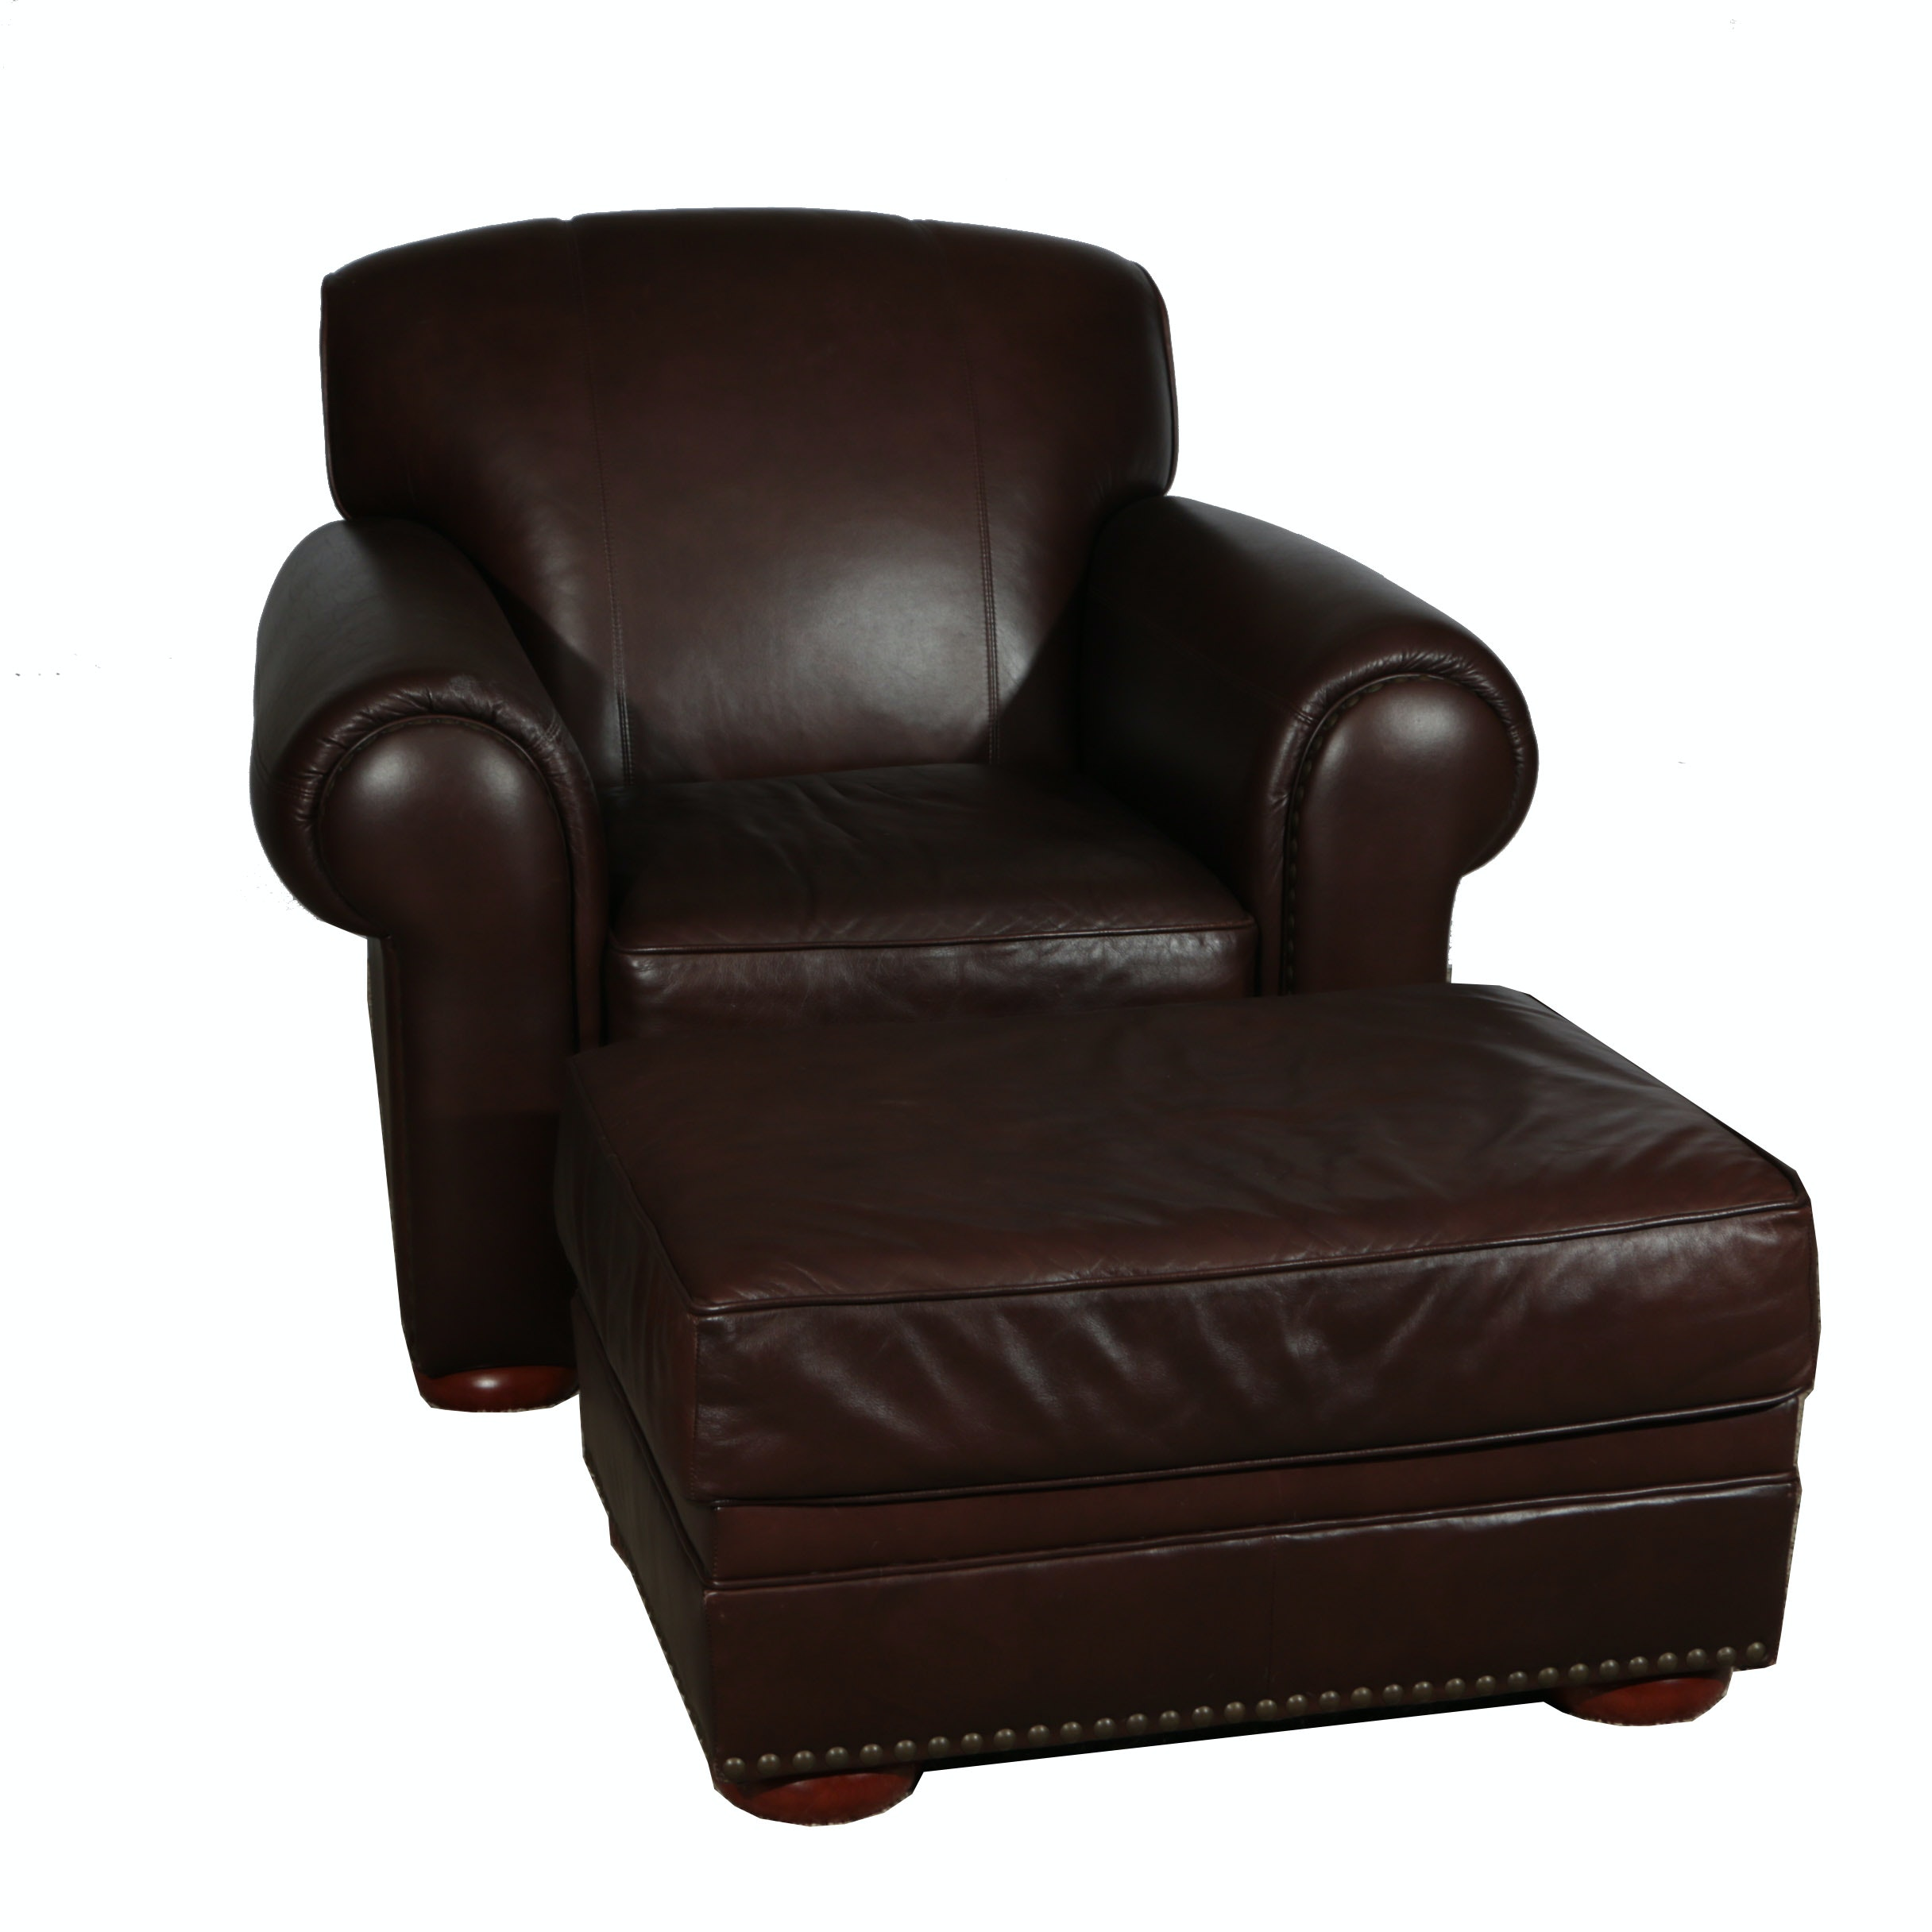 Dark Brown Leather Chair and Ottoman